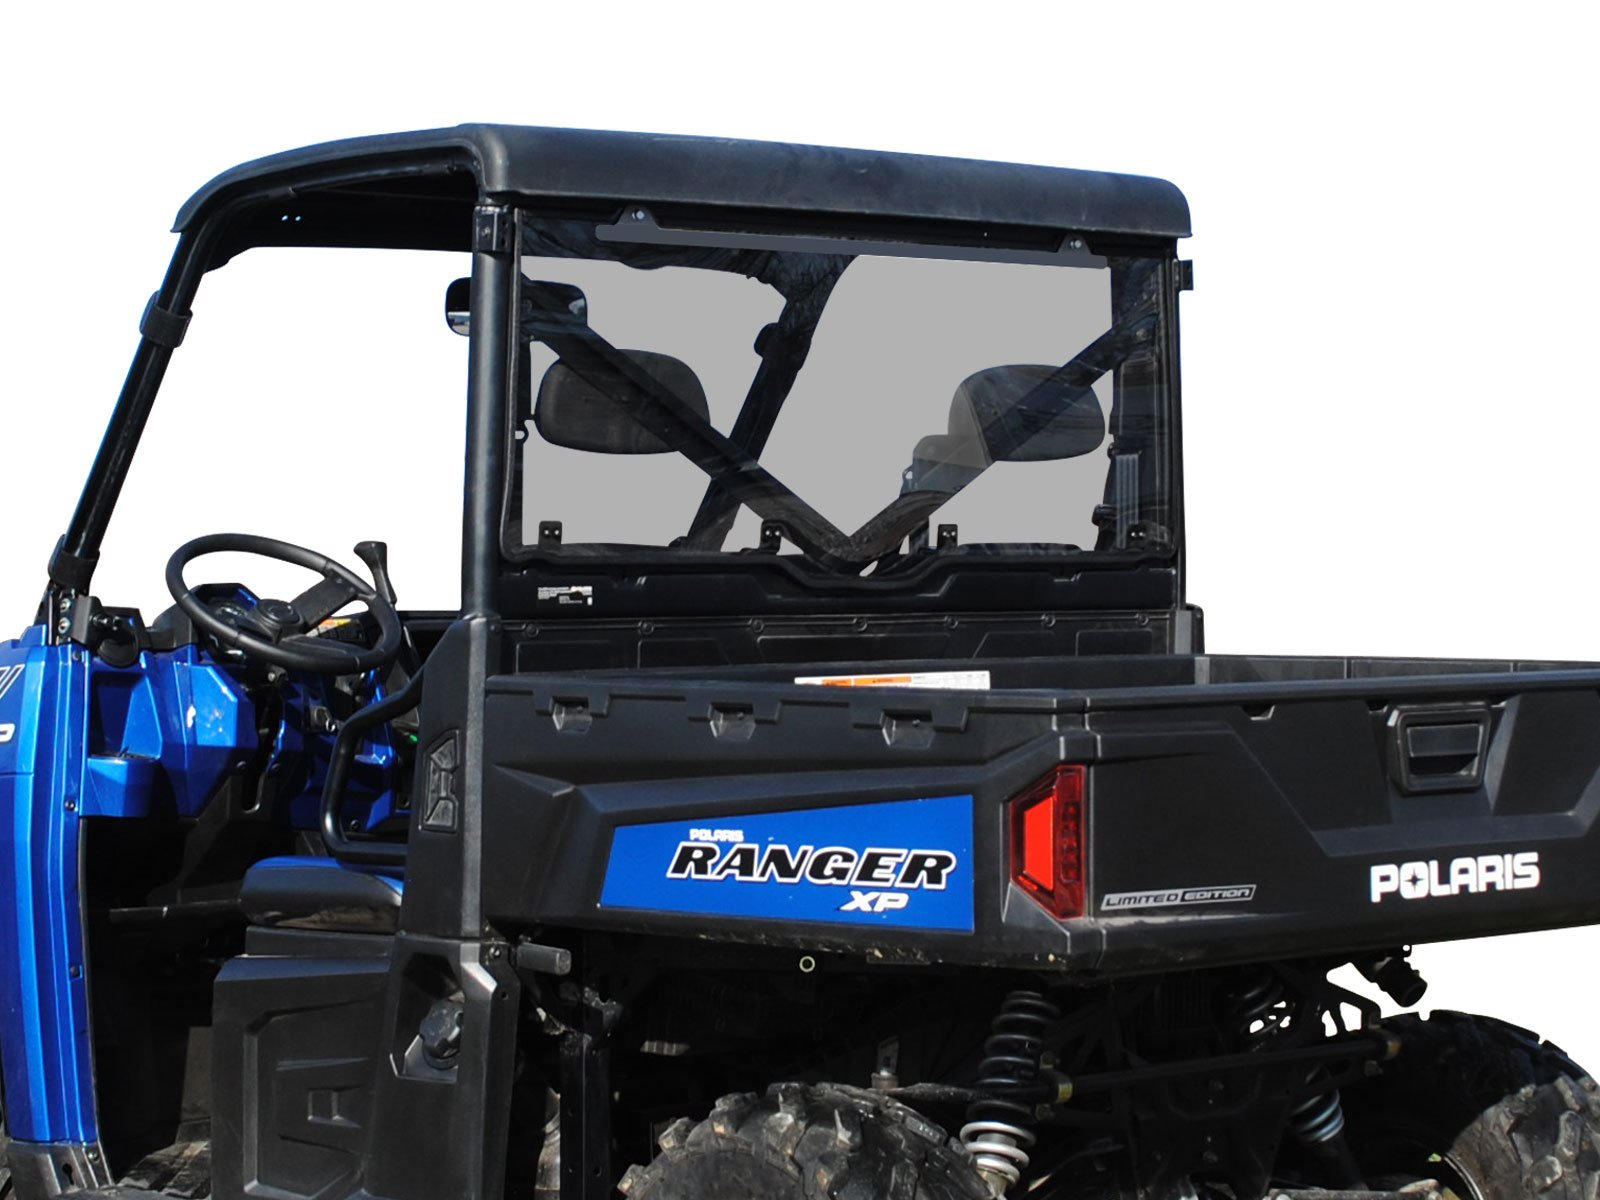 SuperATV Lightly Tinted Scratch Resistant Polycarbonate Rear Windshield for Polaris Ranger XP 900 / XP 900 Crew (2013+) - Easy to Install!